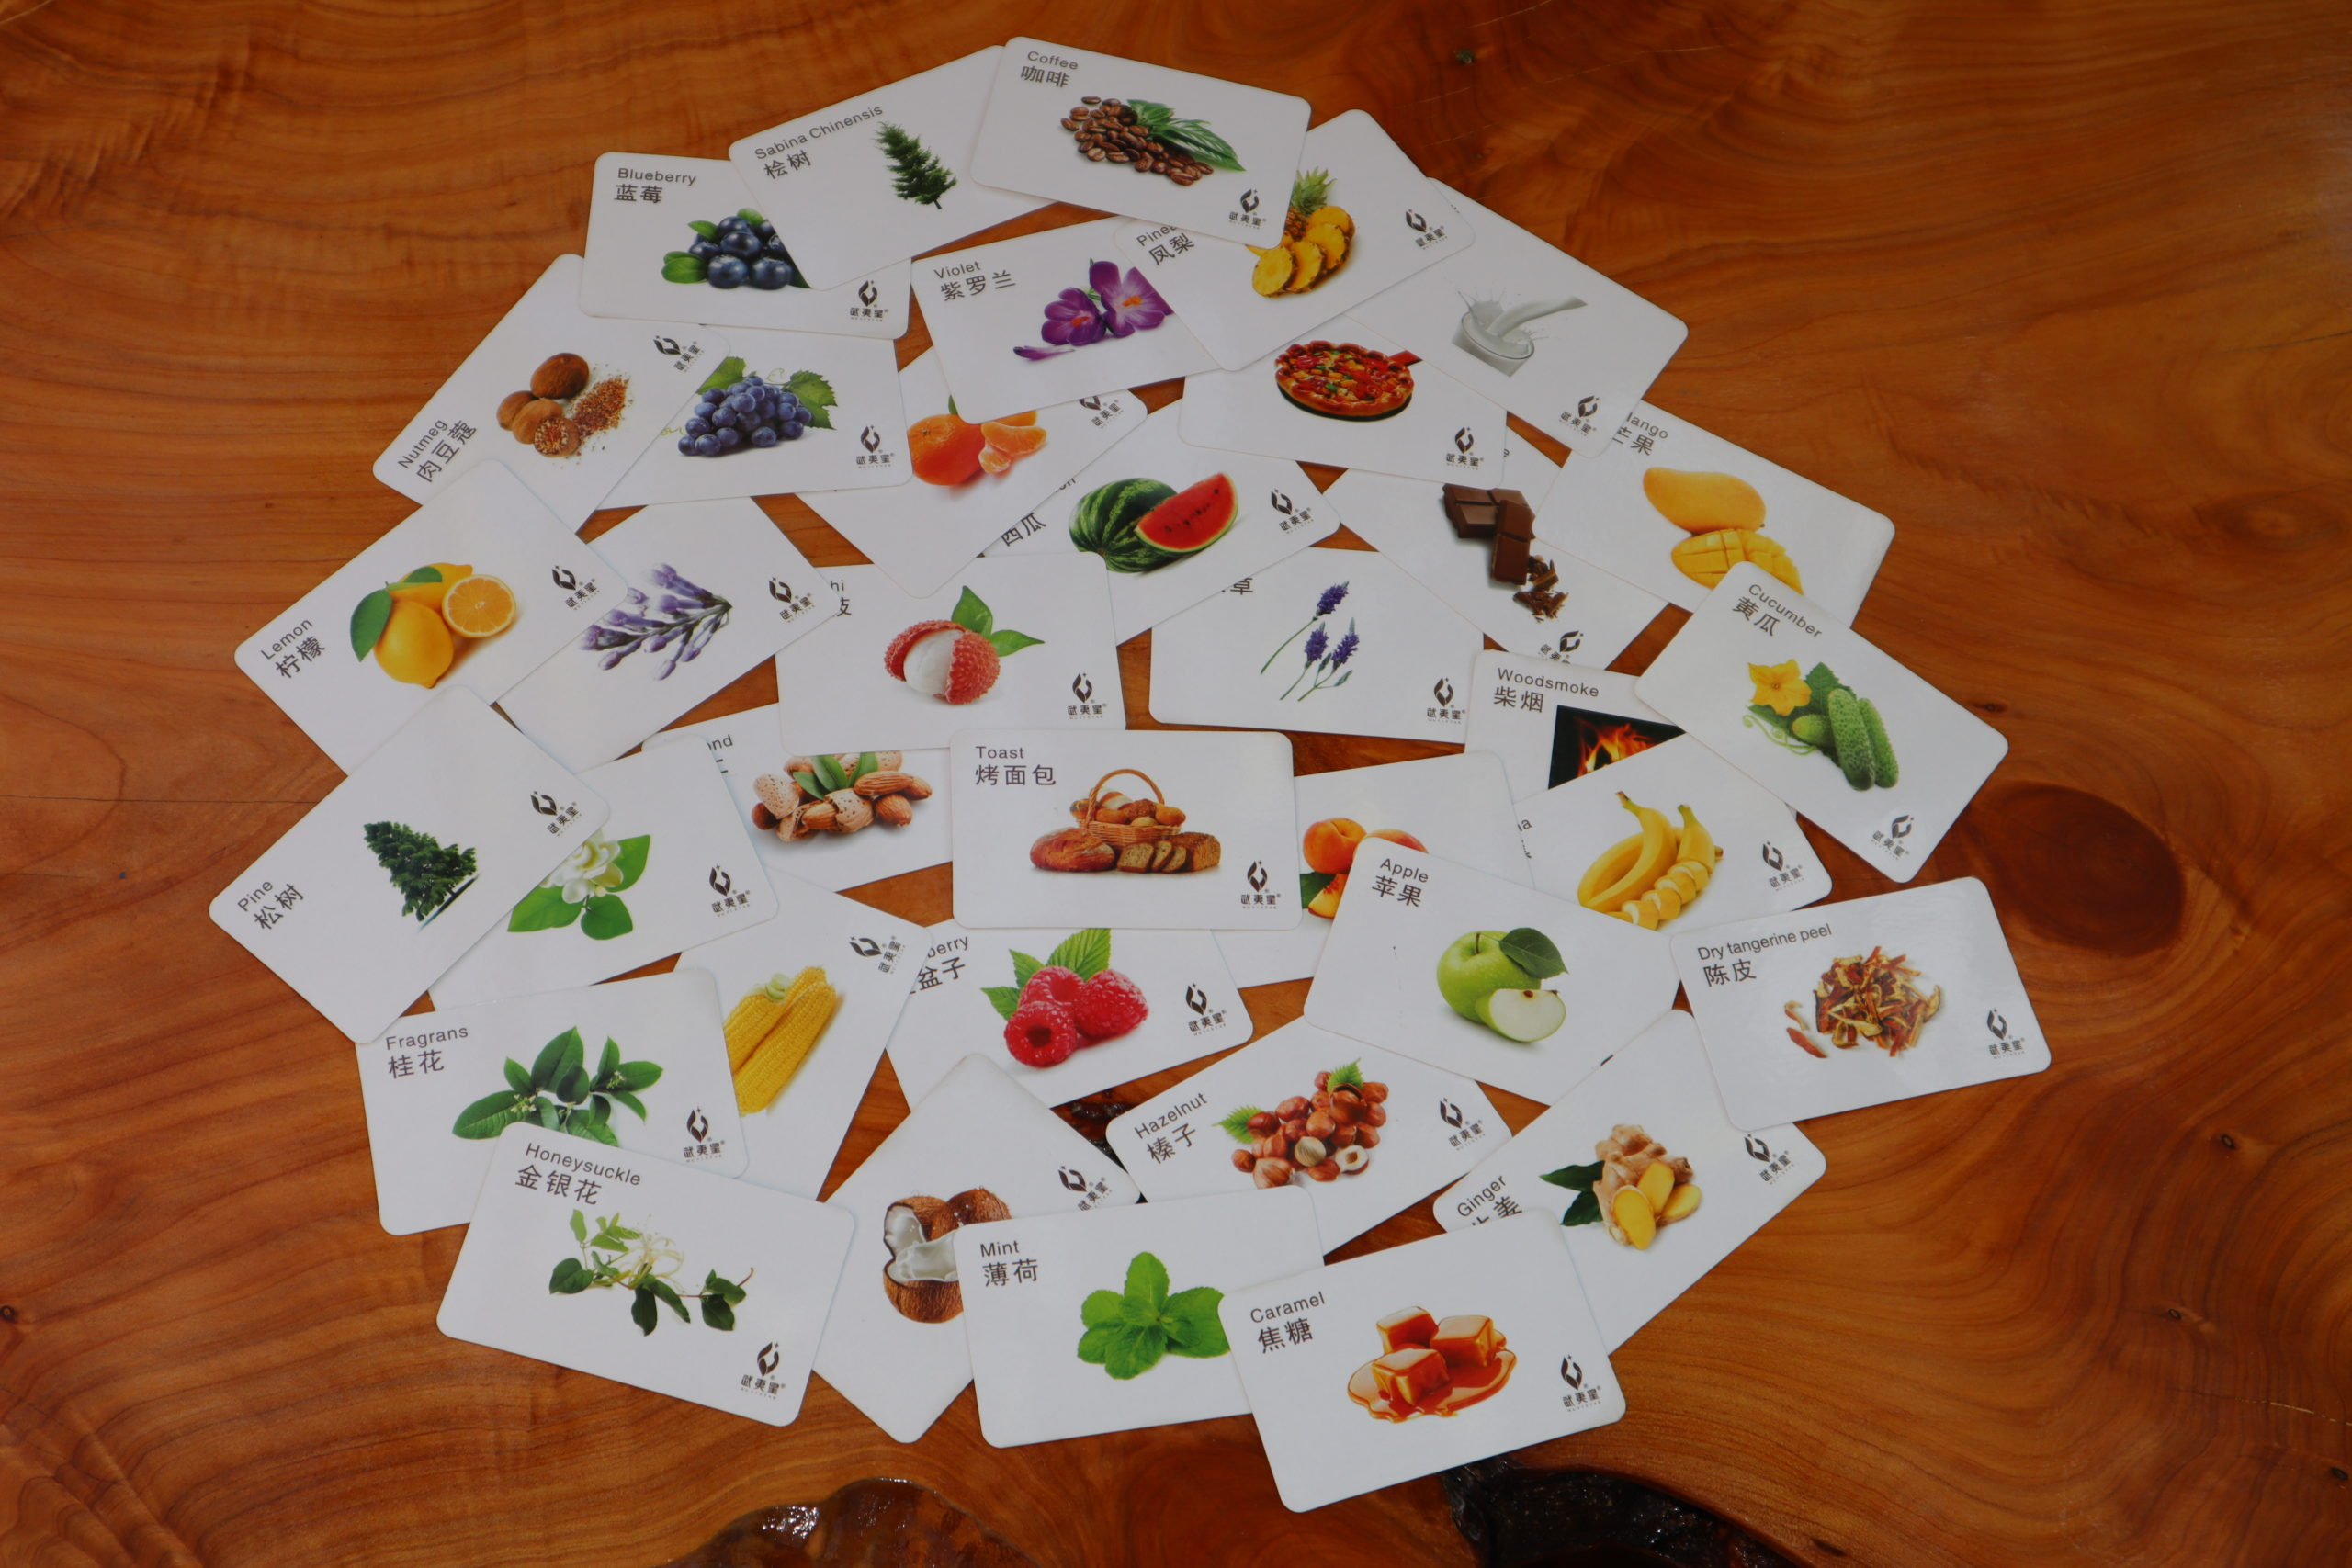 Scent cards